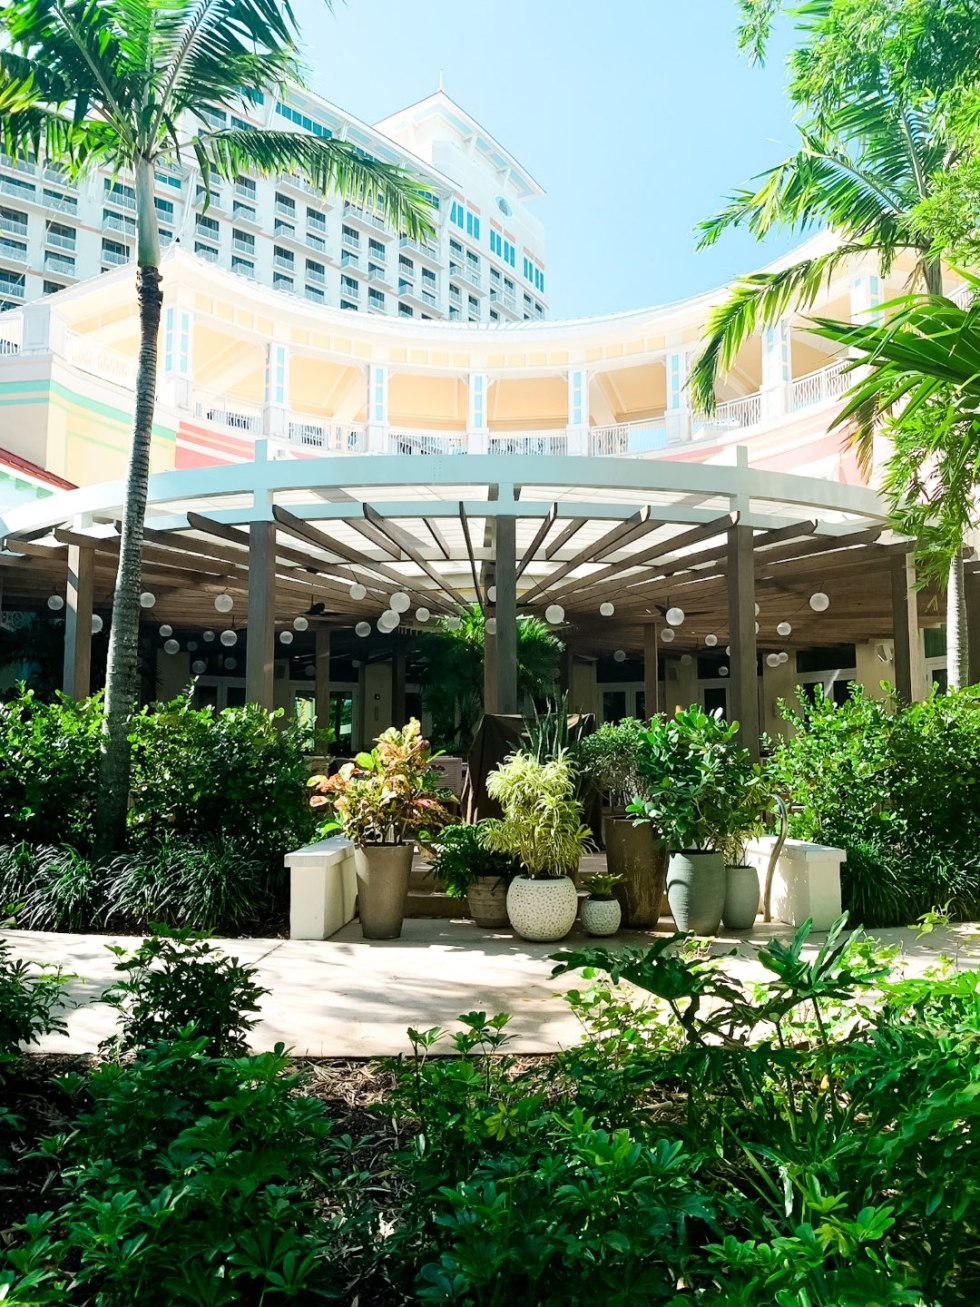 Warming Up in the Bahamas: the Best Things to Do at Baha Mar - I'm Fixin' To - @mbg0112 | Warming Up in the Bahamas: the Best Things to Do in Baha Mar by popular North Carolina travel blog, I'm Fixin' To: image of Baha Mar resort.